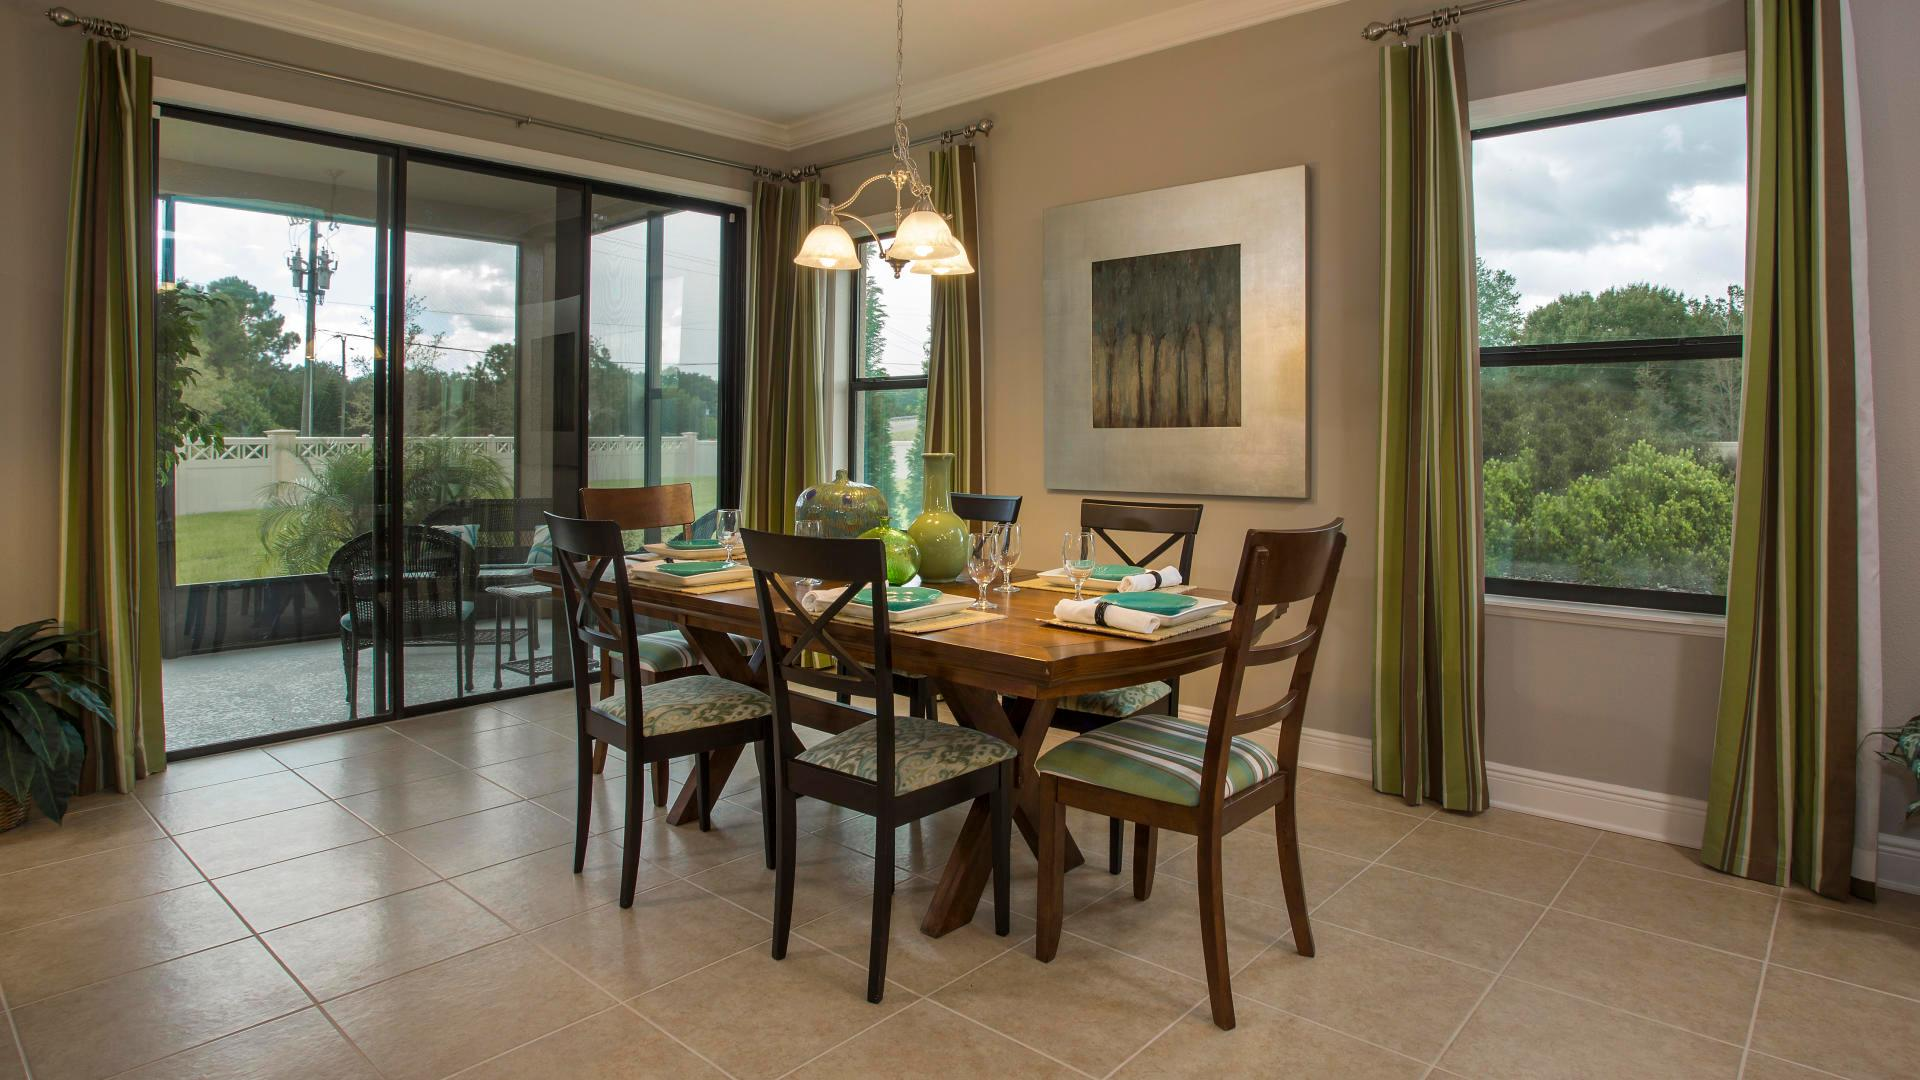 Living Area featured in the Drexel By Maronda Homes in Daytona Beach, FL